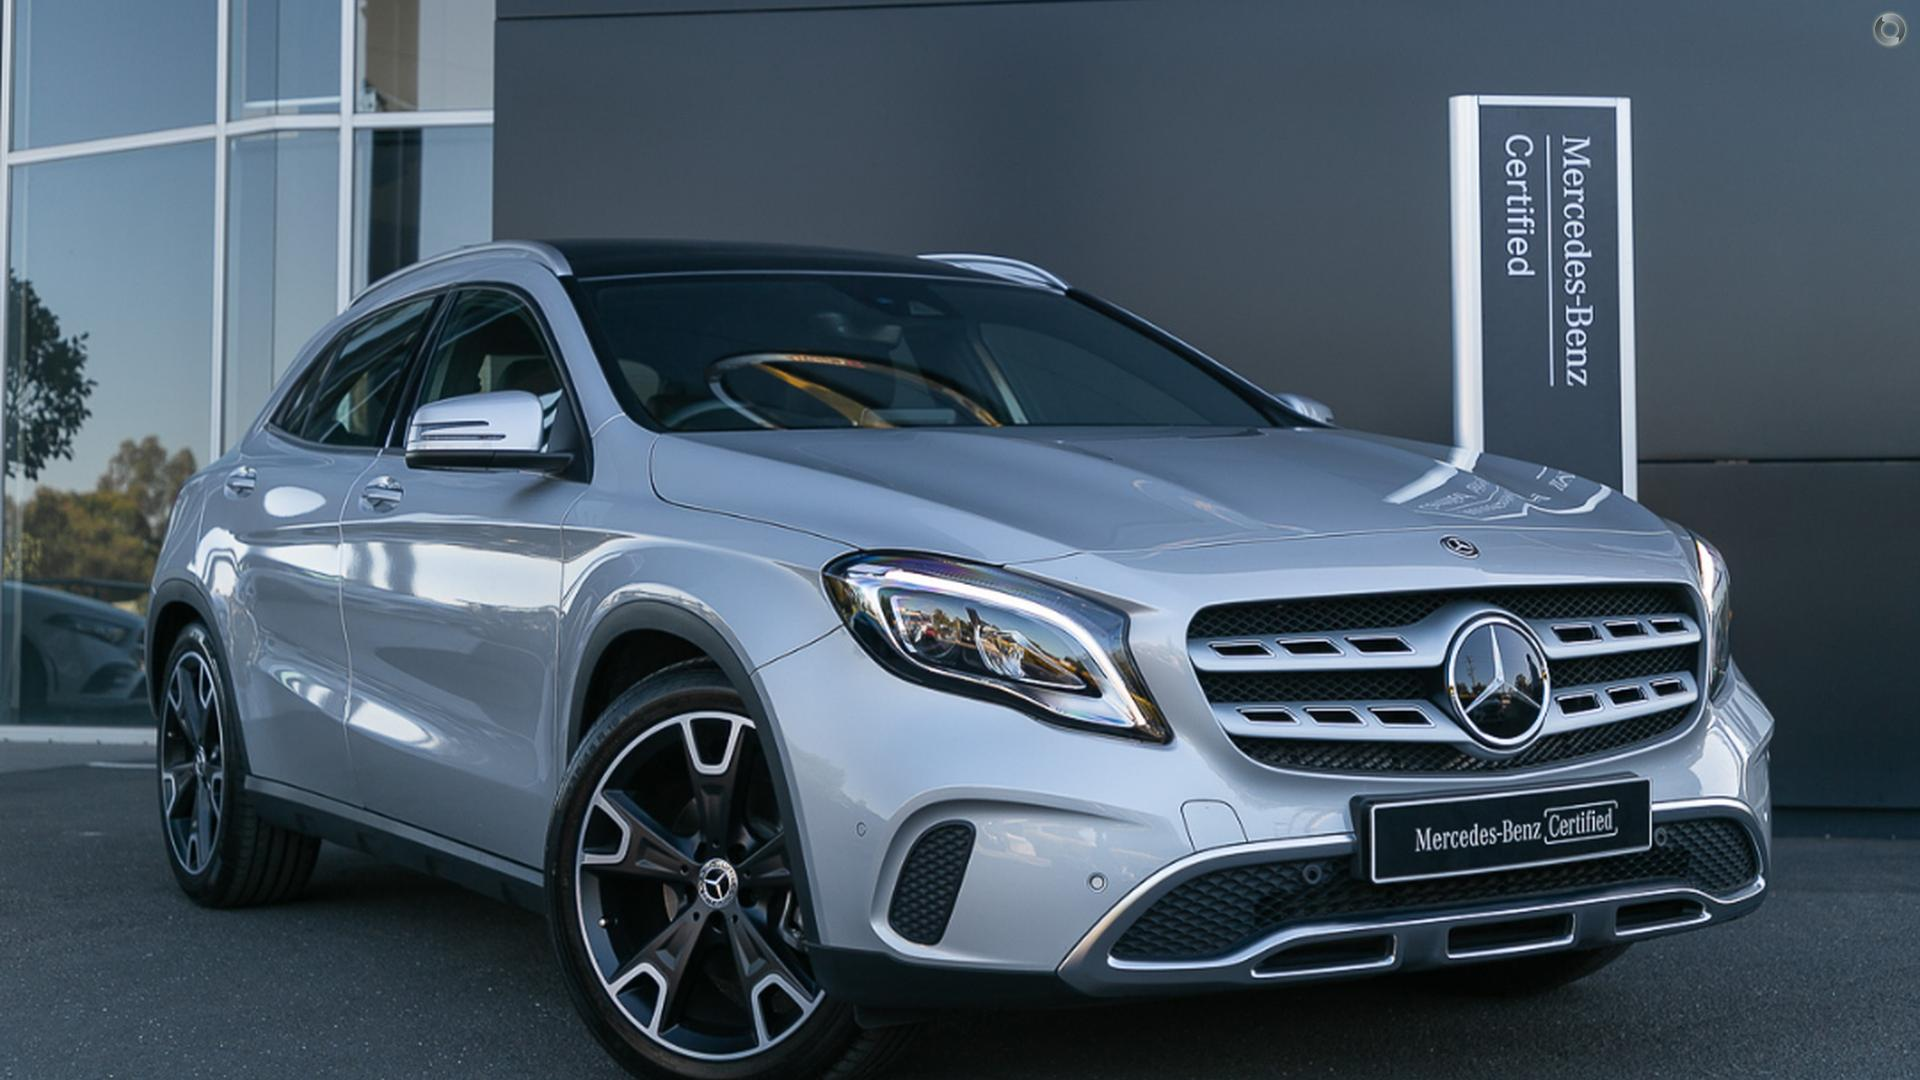 2018 Mercedes-Benz GLA 250 Wagon